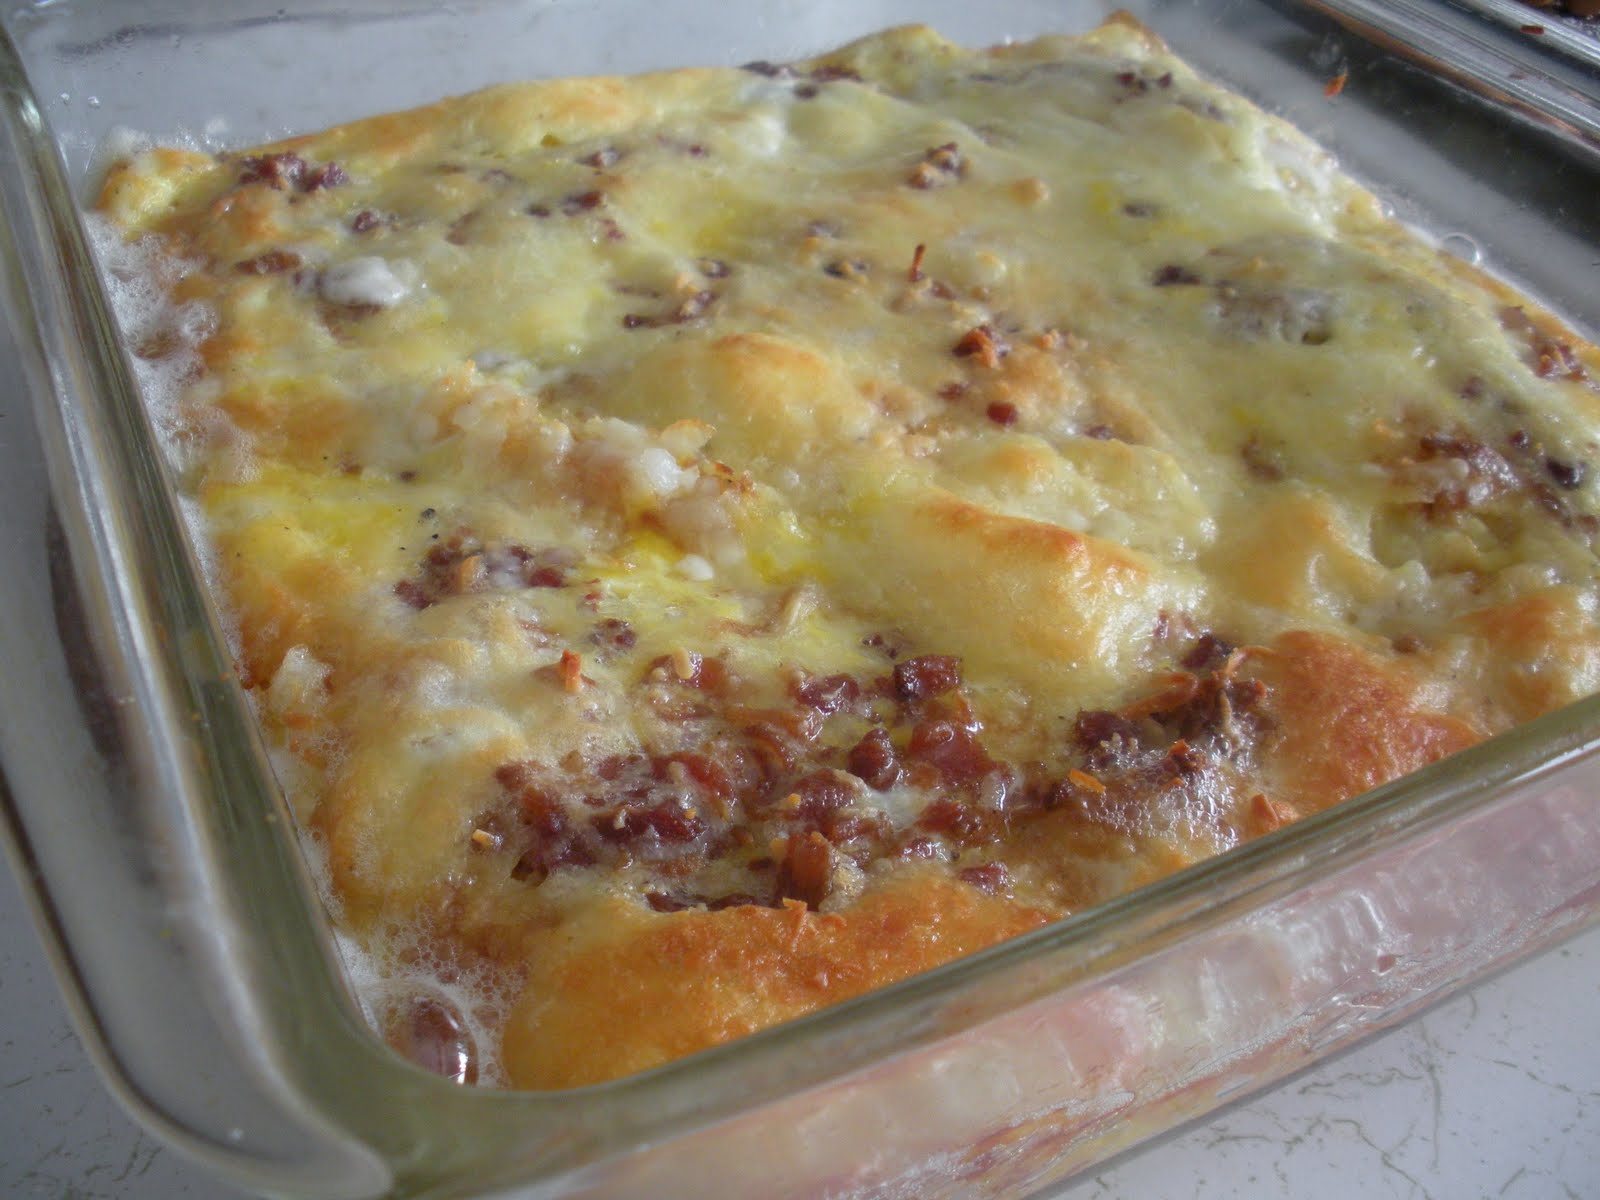 The American Homemaker: Simple Breakfast Casserole